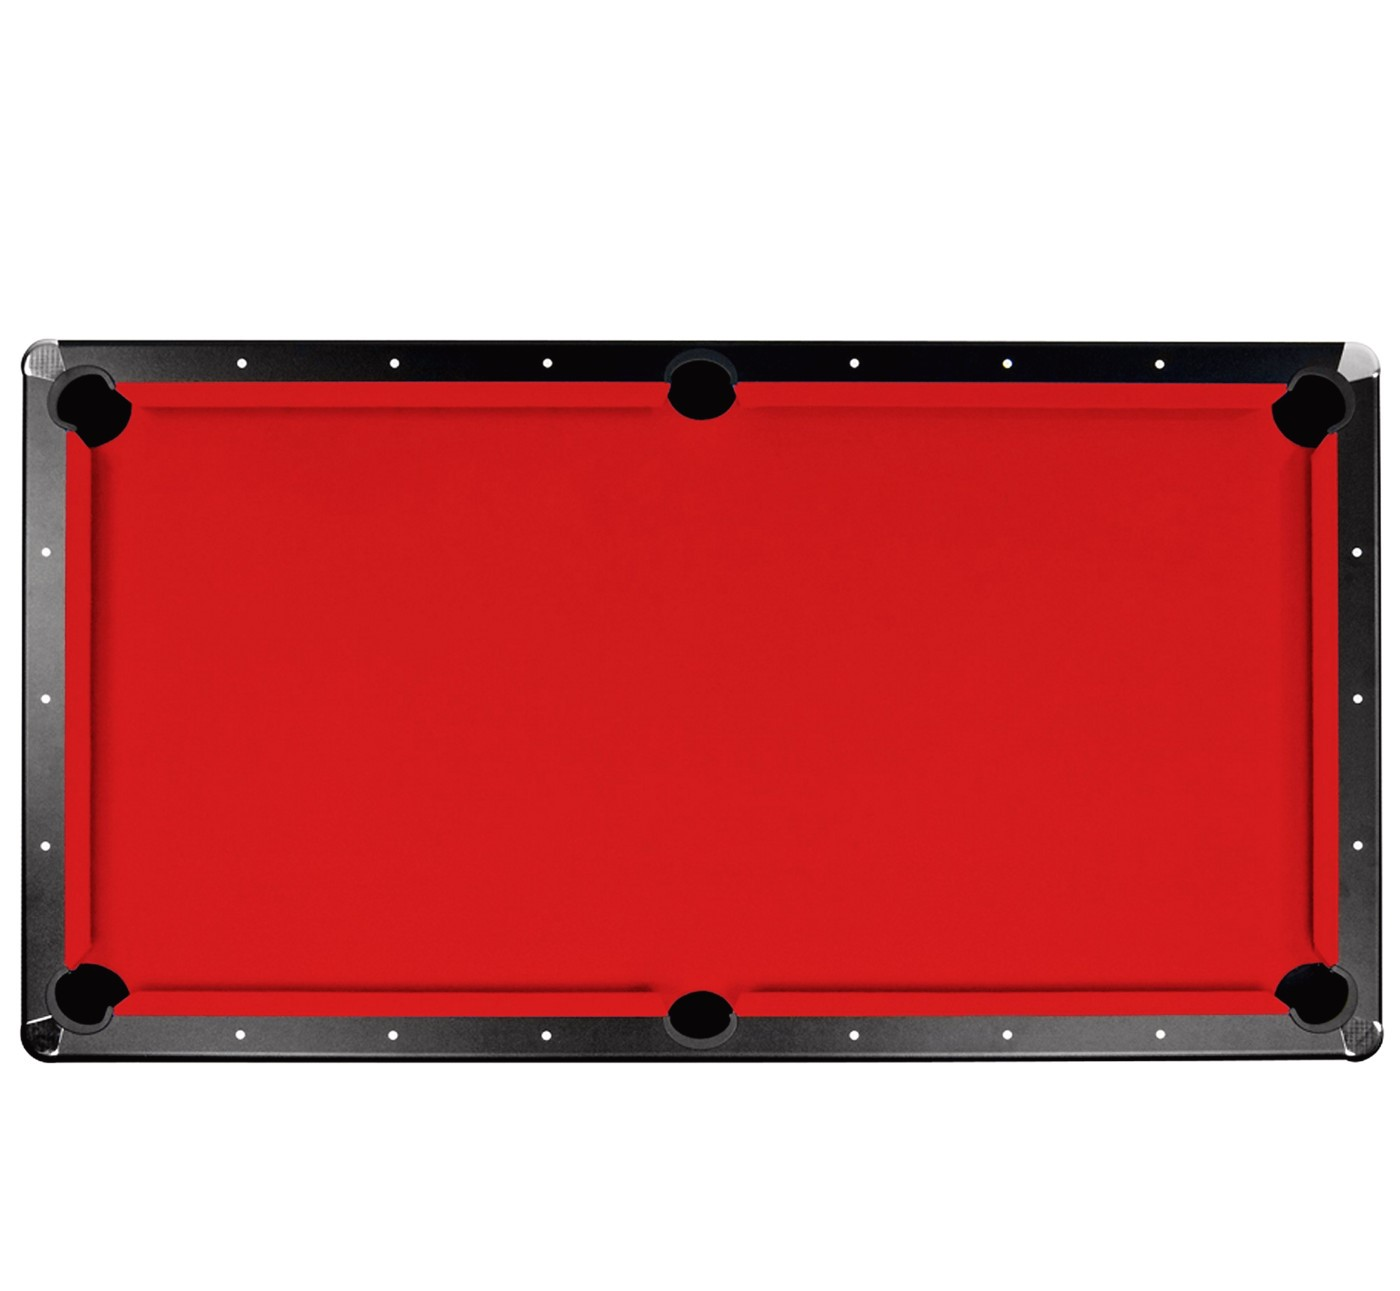 Championship Saturn II 7' Billiard Cloth - Red